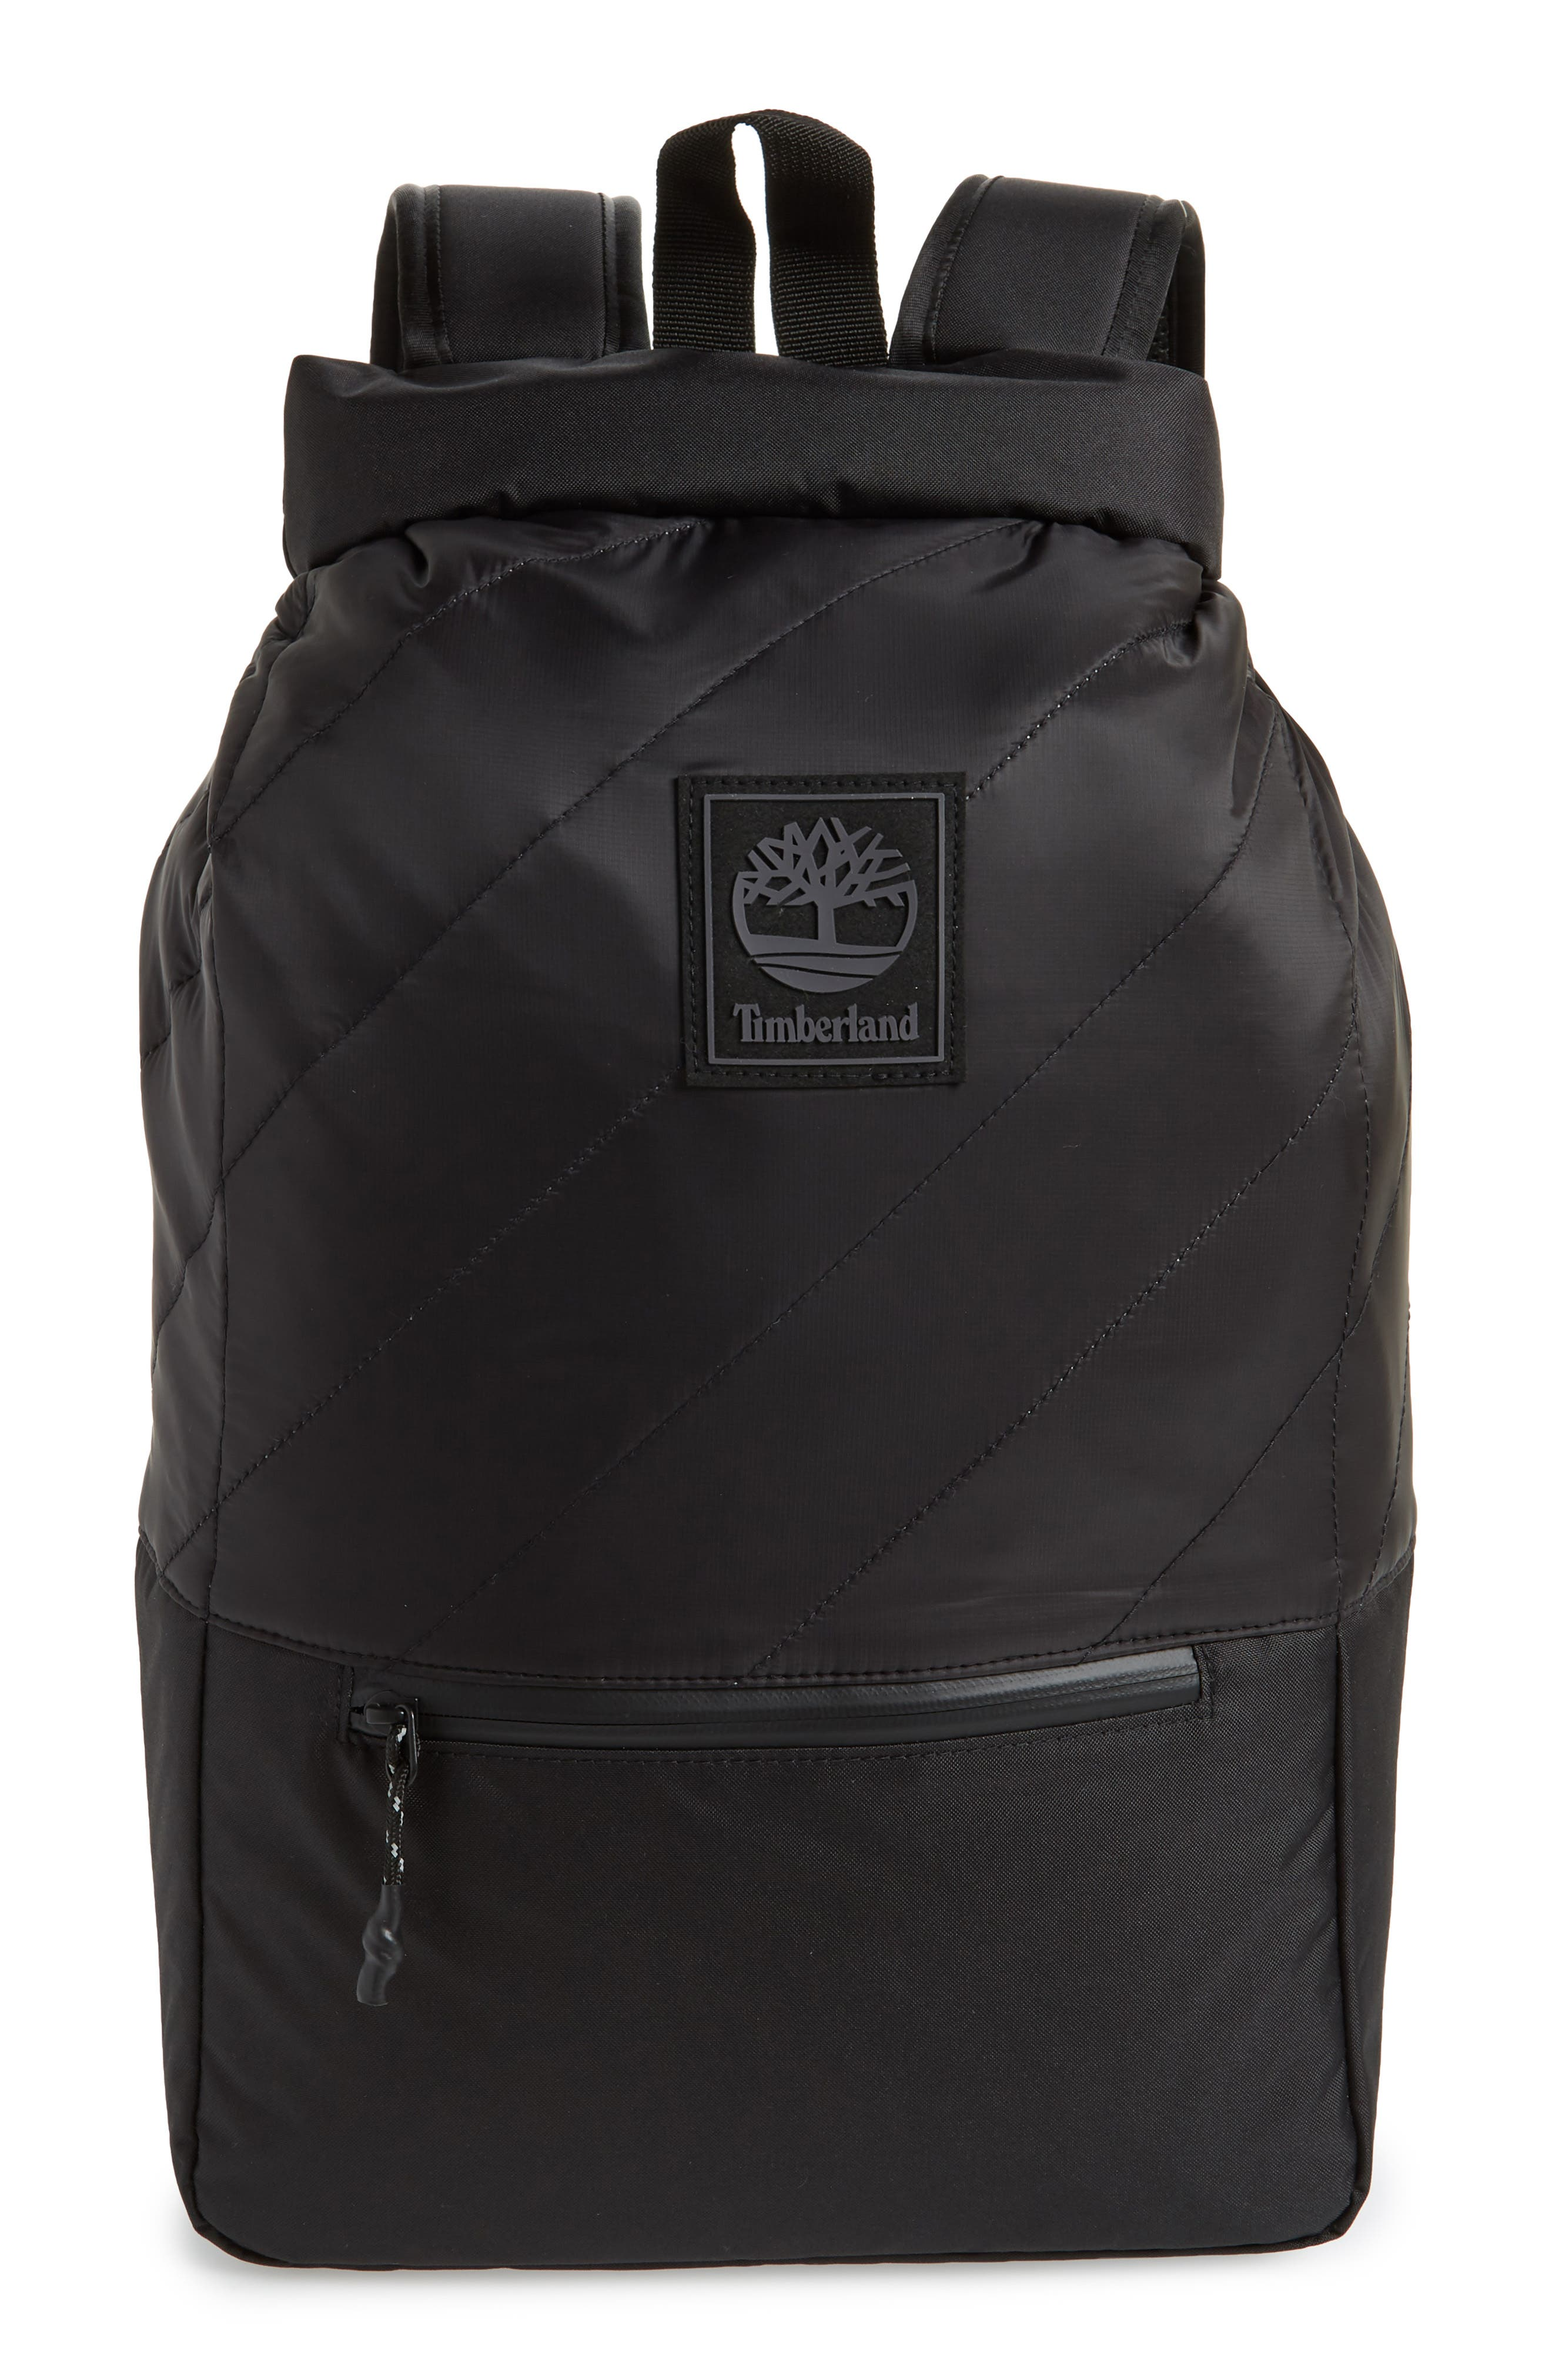 Timberland Roll Top Backpack - Black